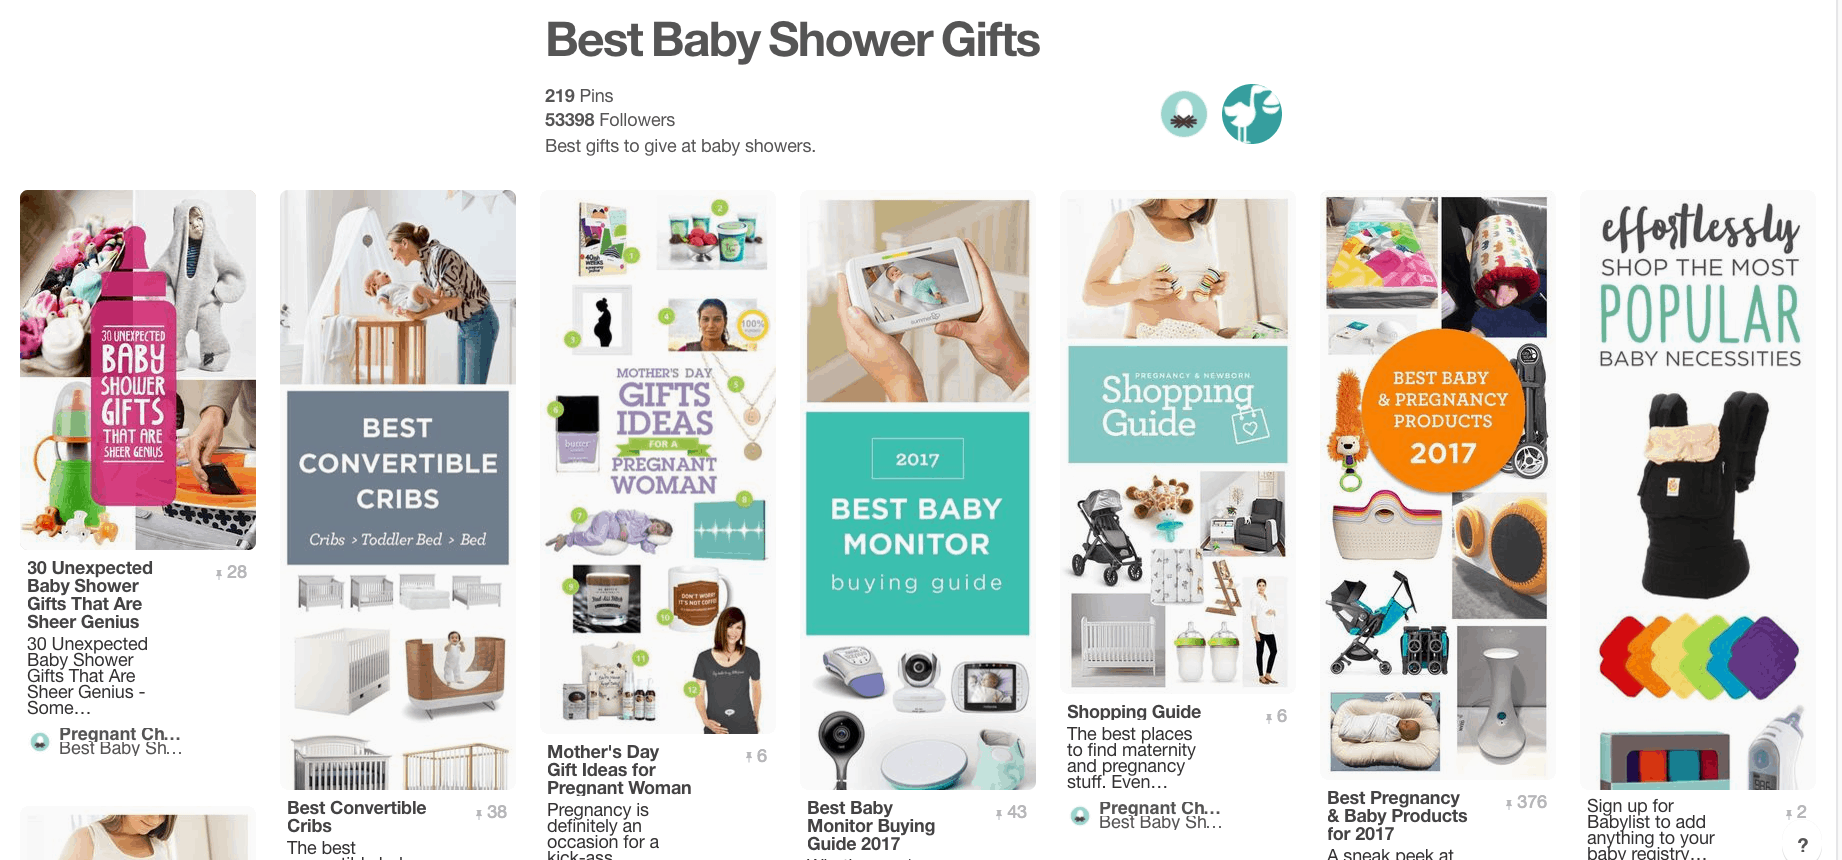 Collage of baby shower gift ideas.